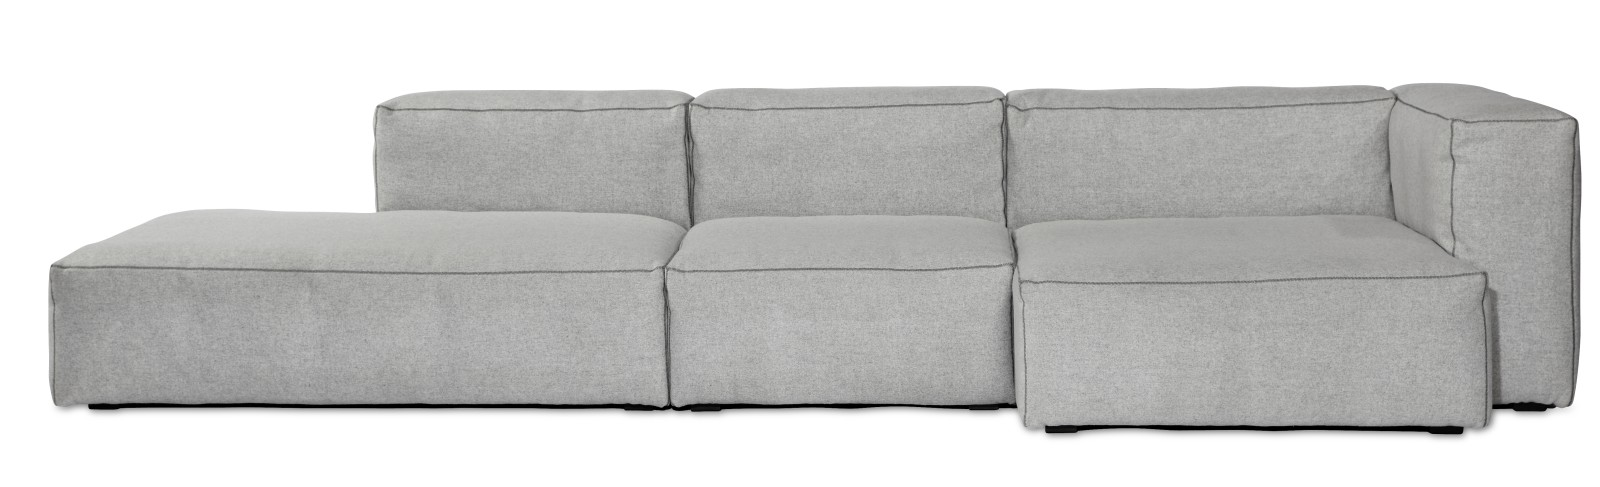 Mags Chaise Lounge Soft Modular Element S8161 - Right Hallingdal 65 100